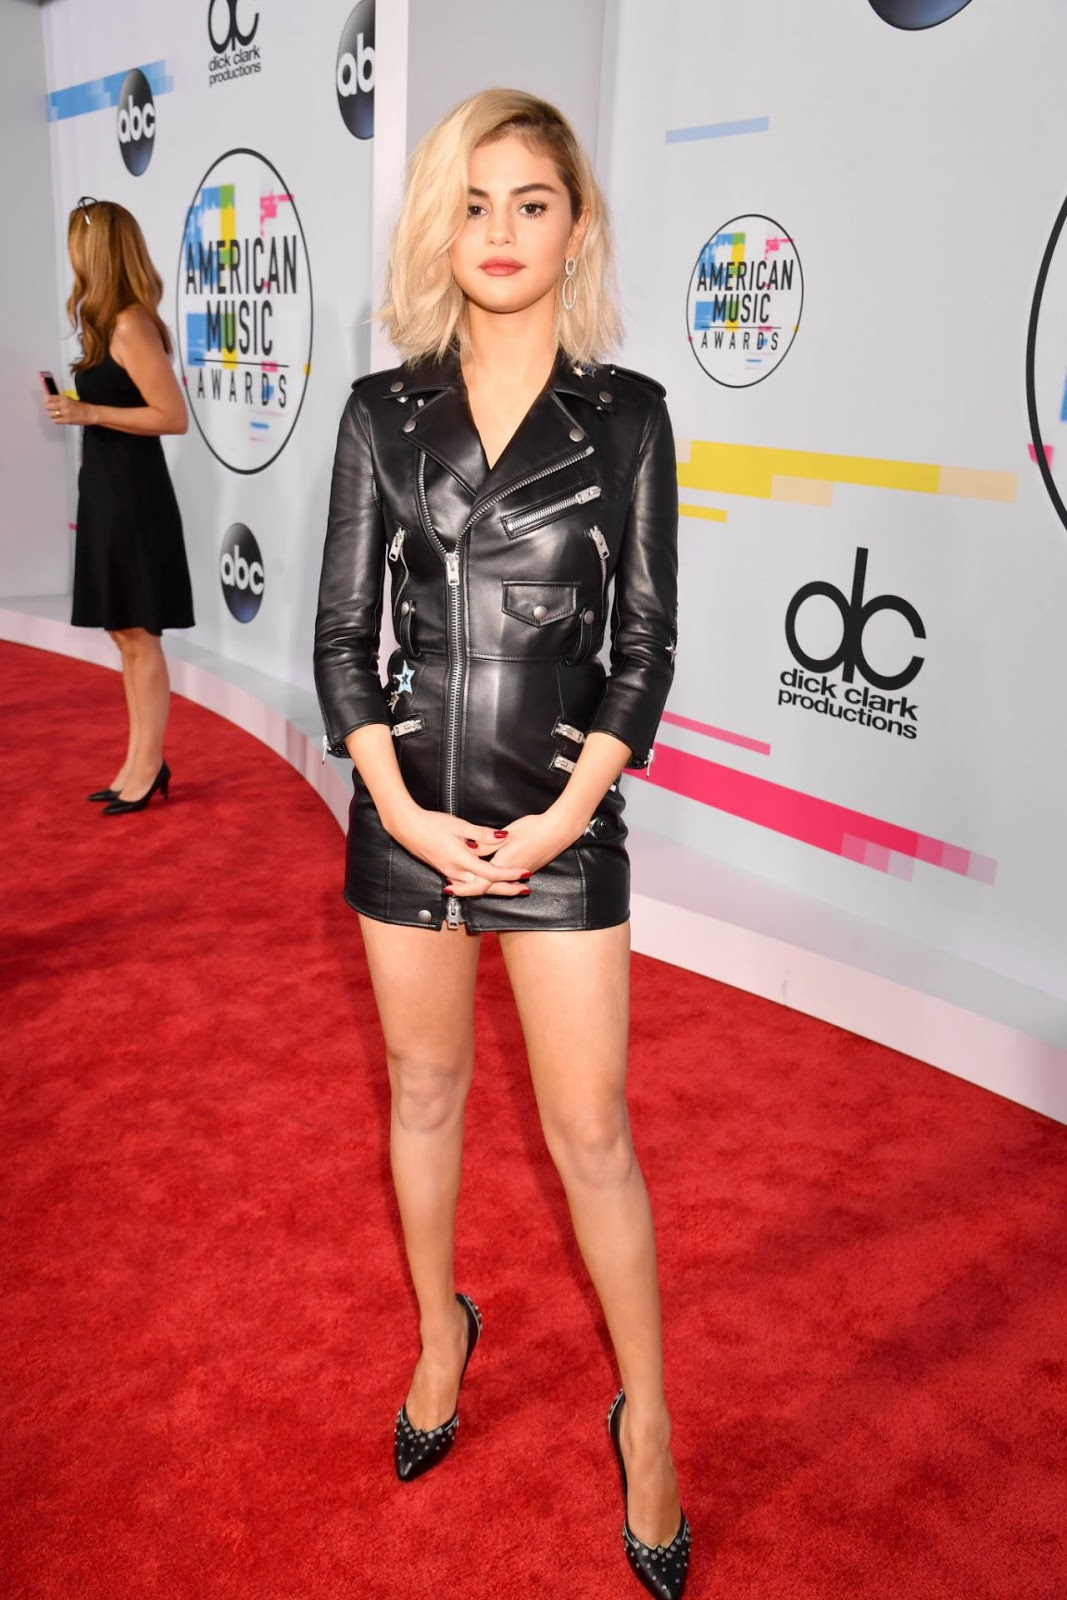 Selena Gomez Amas 2017 >> Selena Gomez goes blonde and arrives in leather to the 2017 AMAs